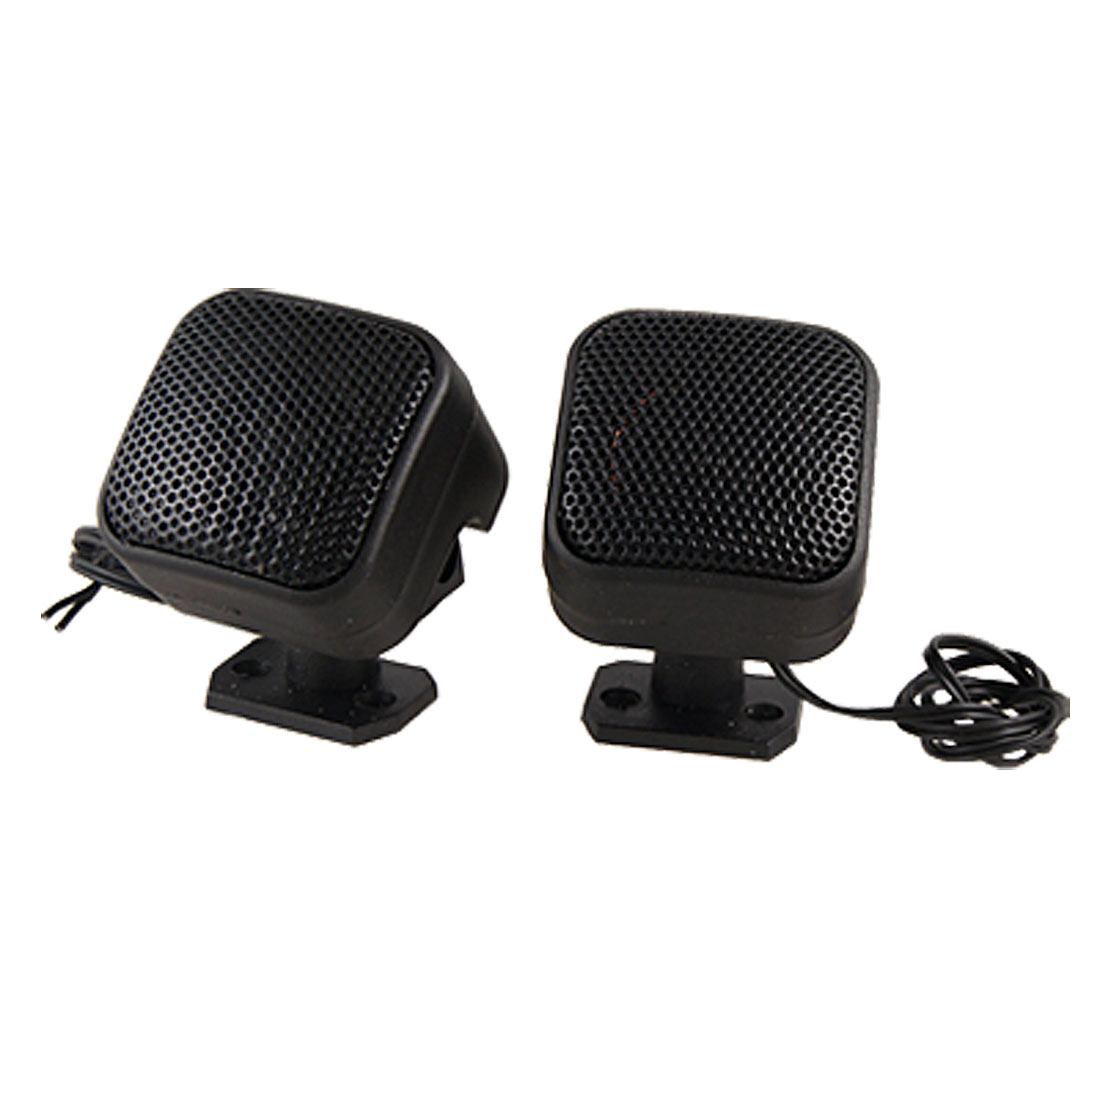 Auto Car Cubic Tweeters Audio Speakers Black 100-150 Watt